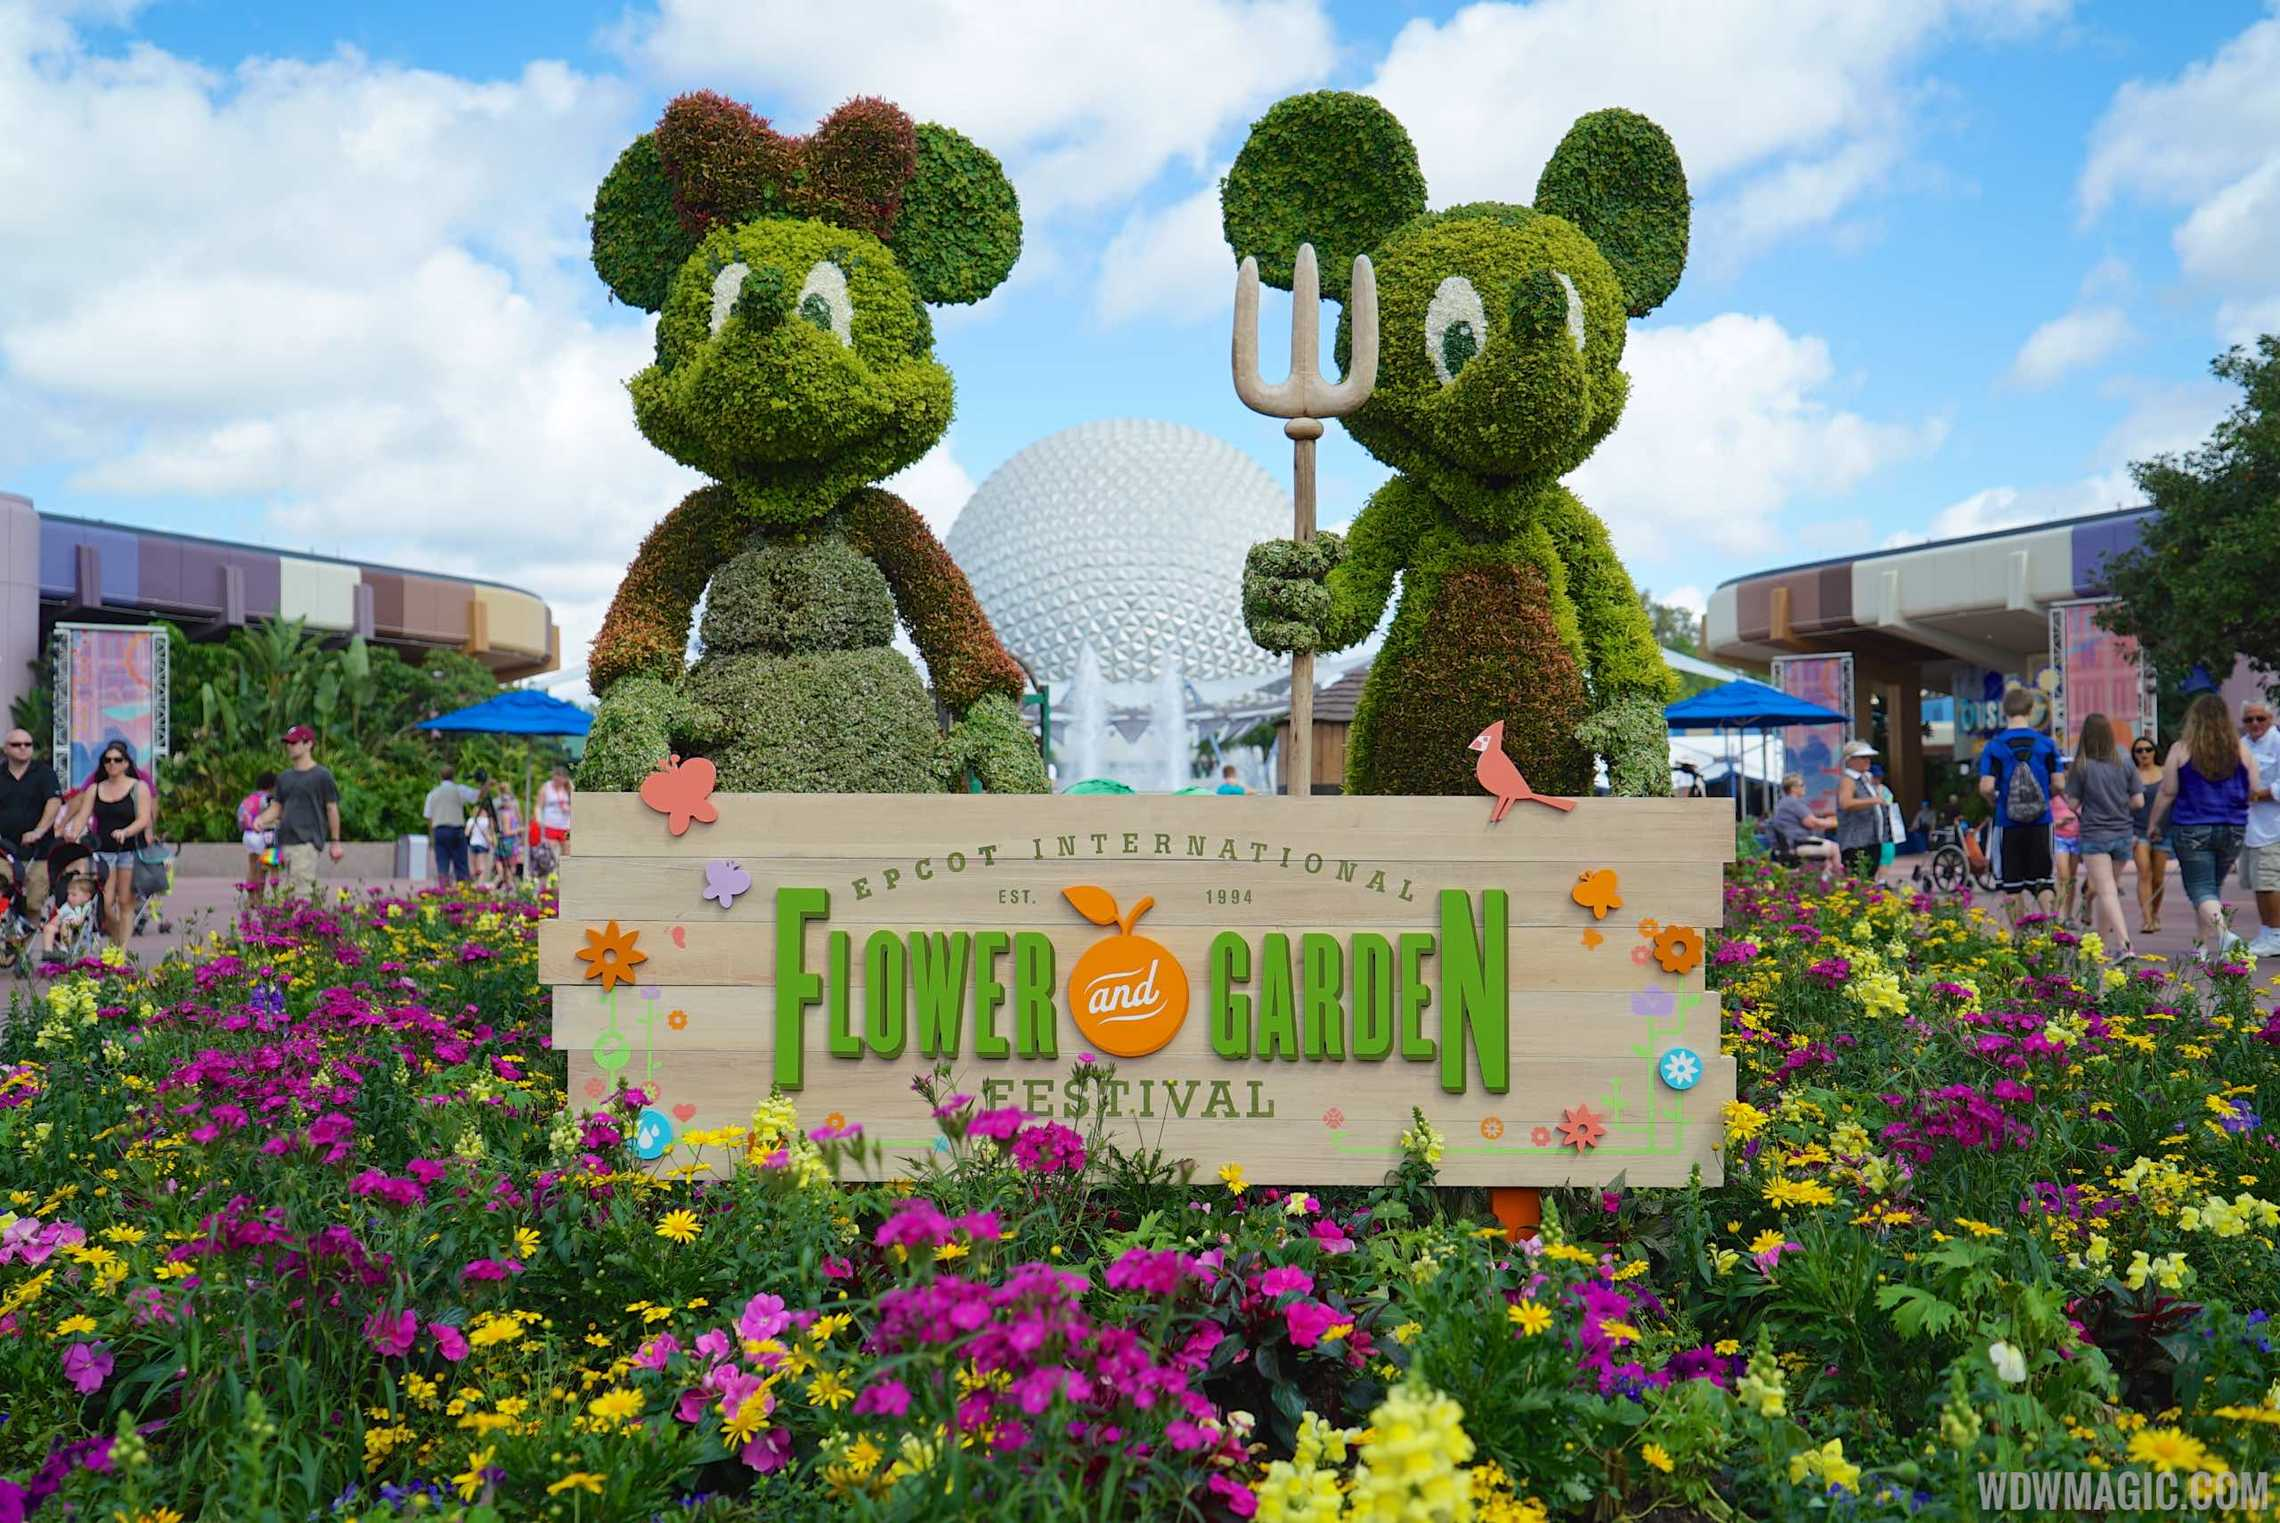 29nov2016 New Outdoor Kitchens And Topiaries To Join The 2017 Epcot International Flower And Garden Festival on oscar free kick